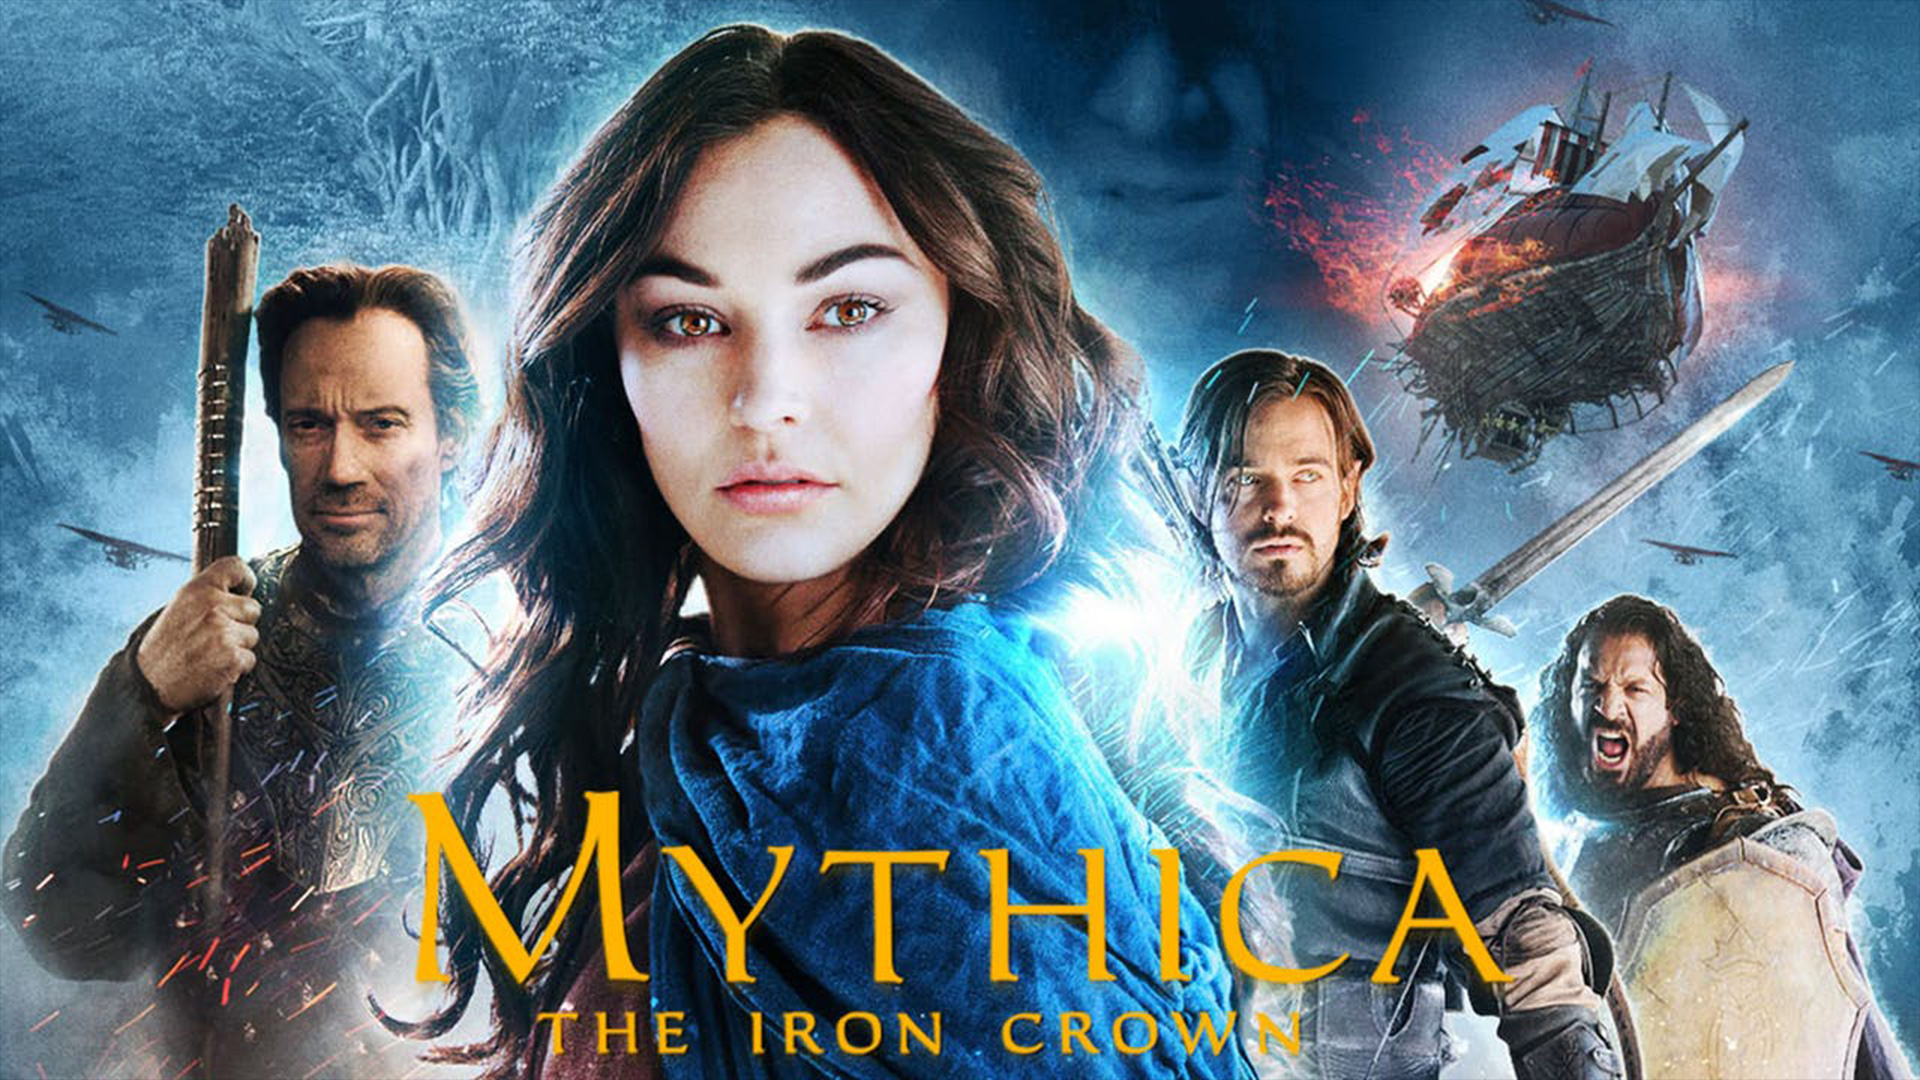 Mythica: The Iron Crown on Amazon Prime Video UK